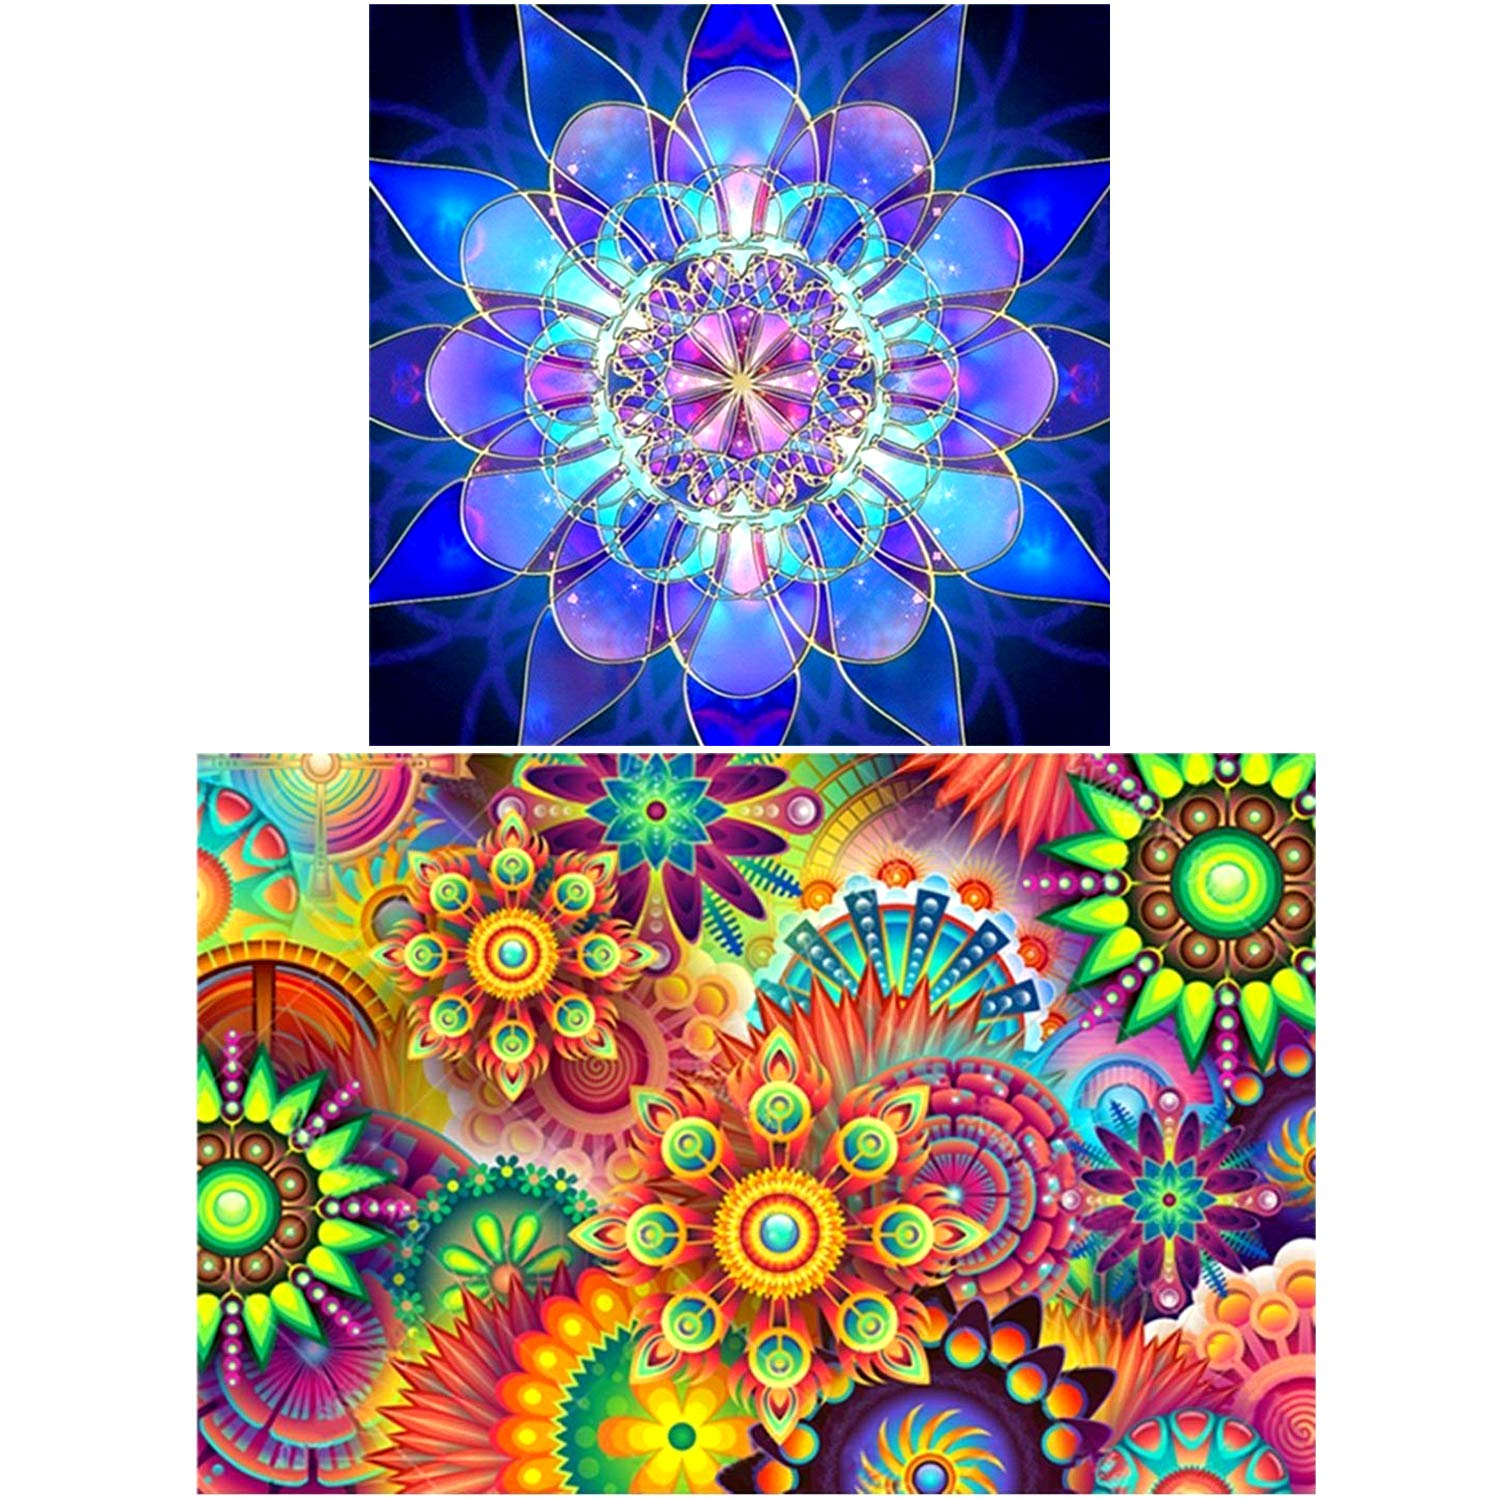 2 Pack 5D DIY Diamond Painting by Number Kits,for Kaleidoscope Mandala (17.7X12inch) Geometric Blue Flower(12X12inch) UPINS